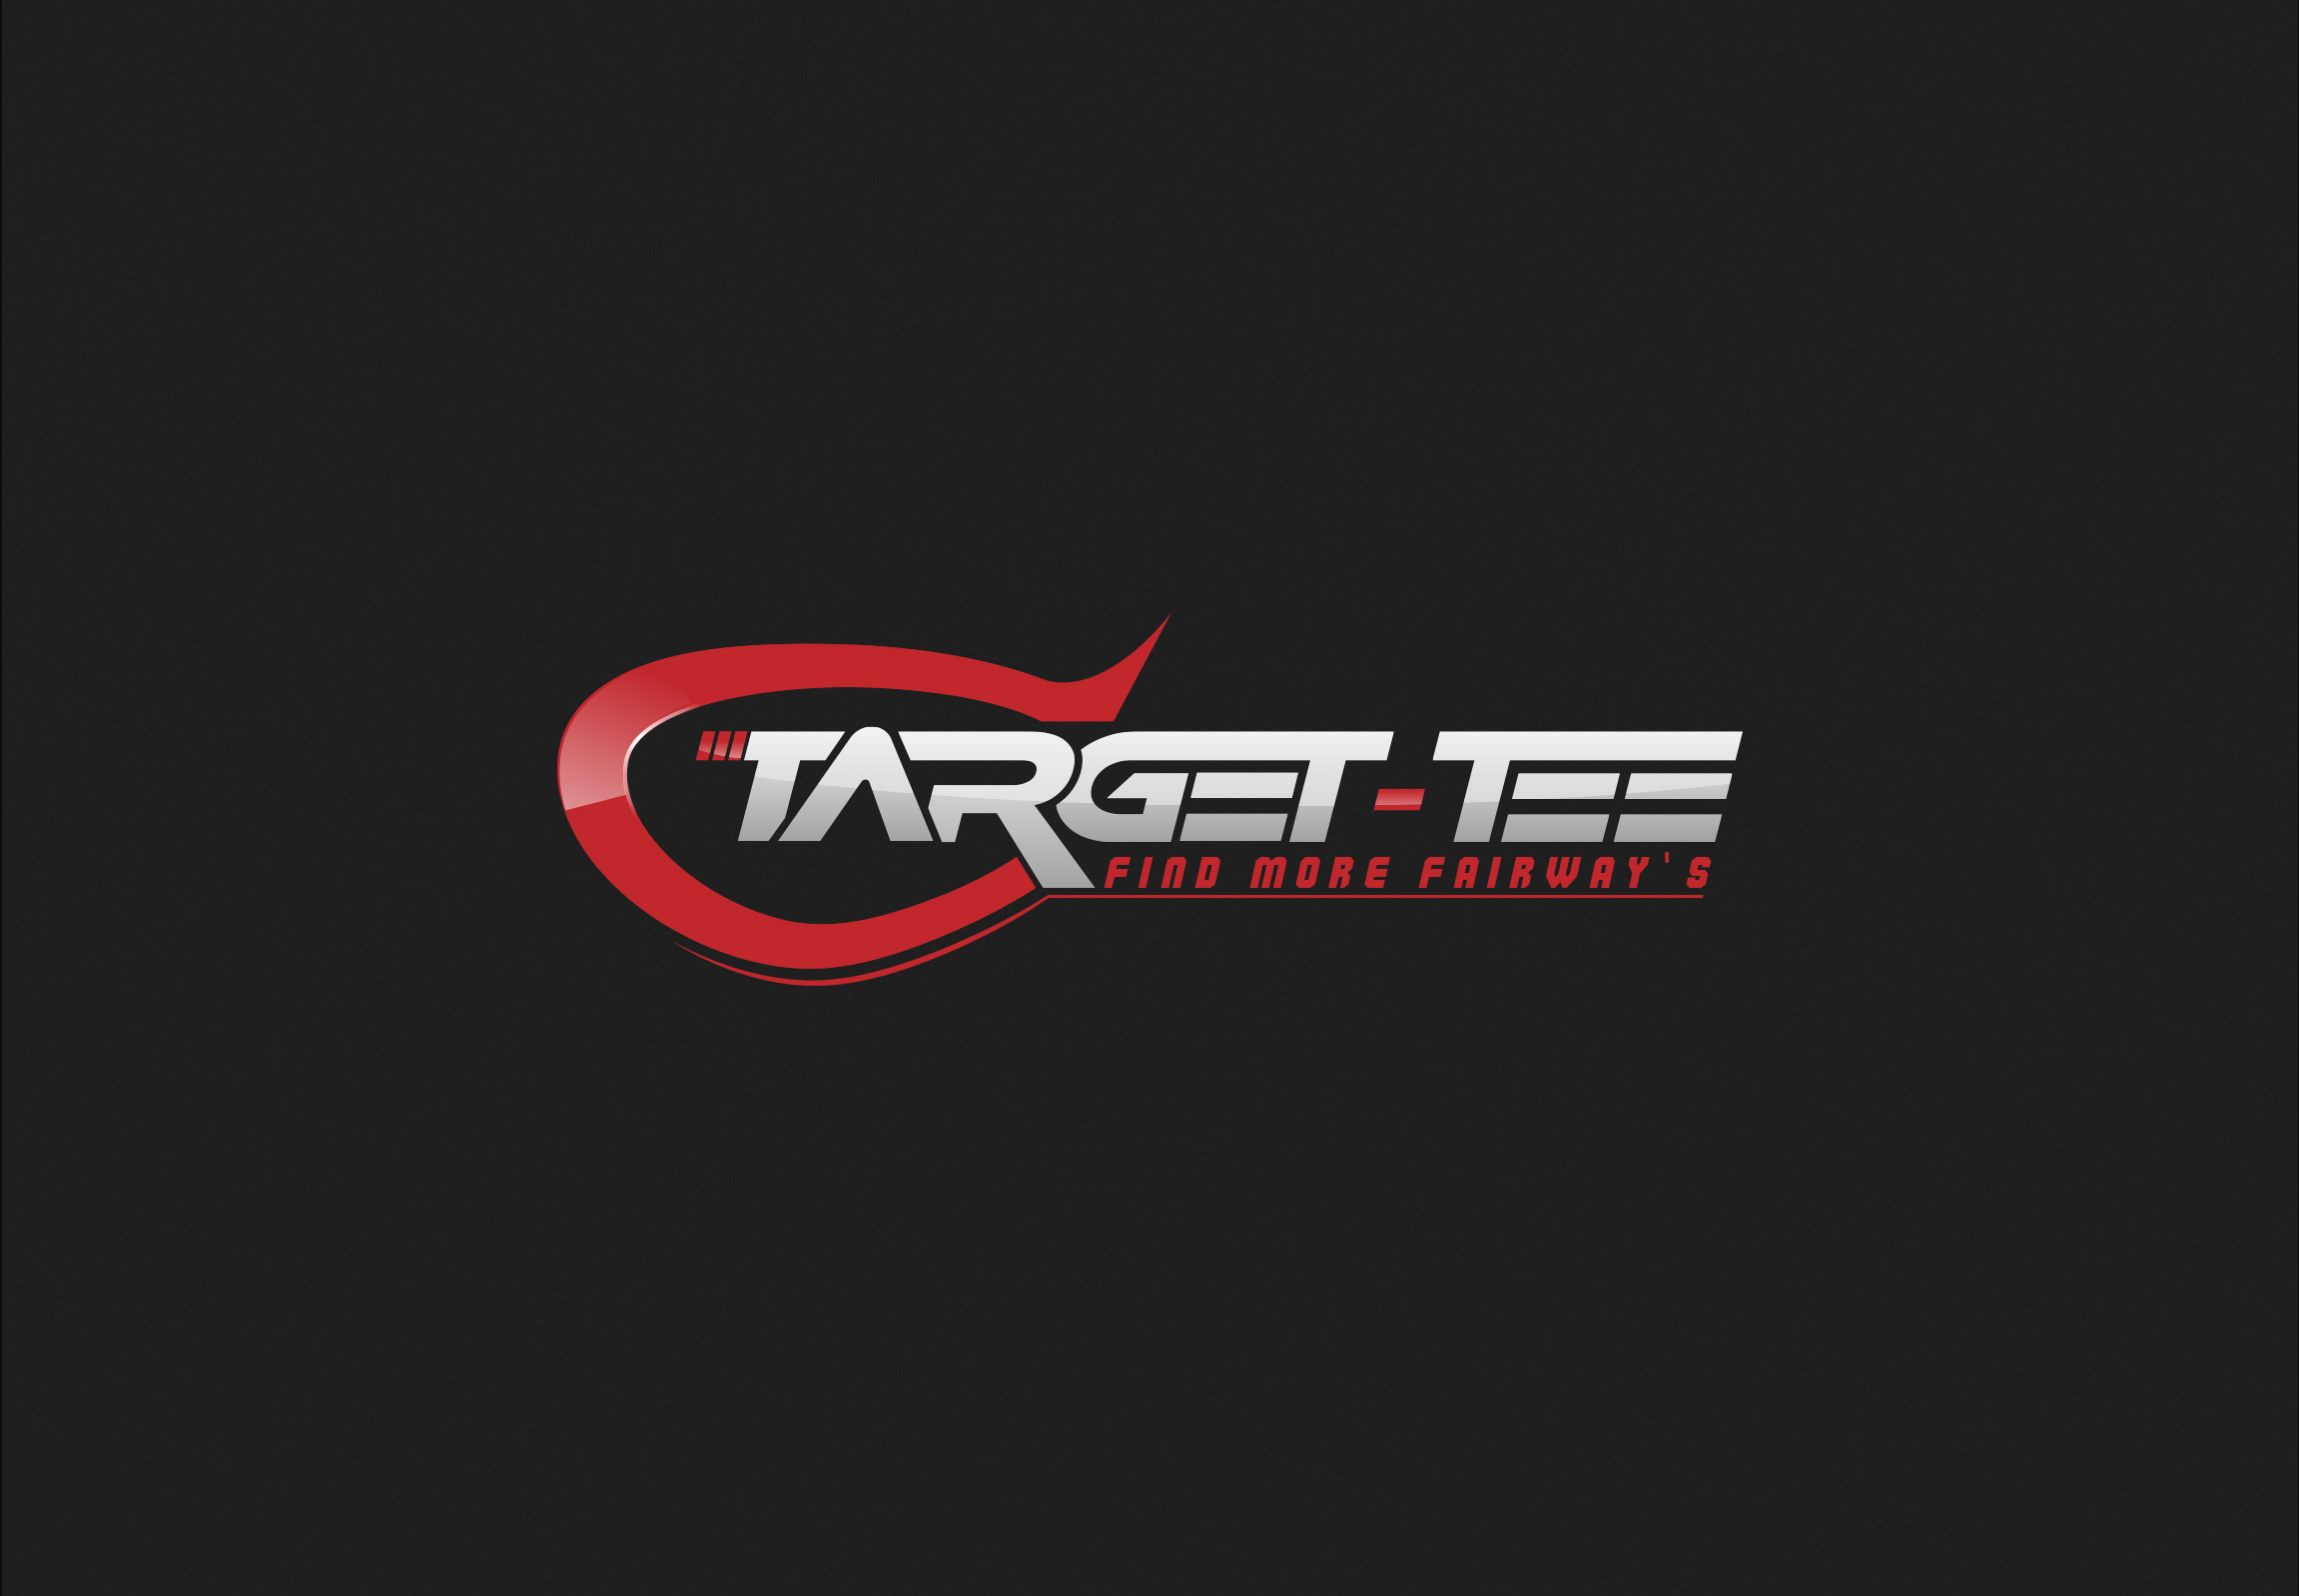 Logo Design by olii - Entry No. 133 in the Logo Design Contest Imaginative Logo Design for TARGET-TEE.